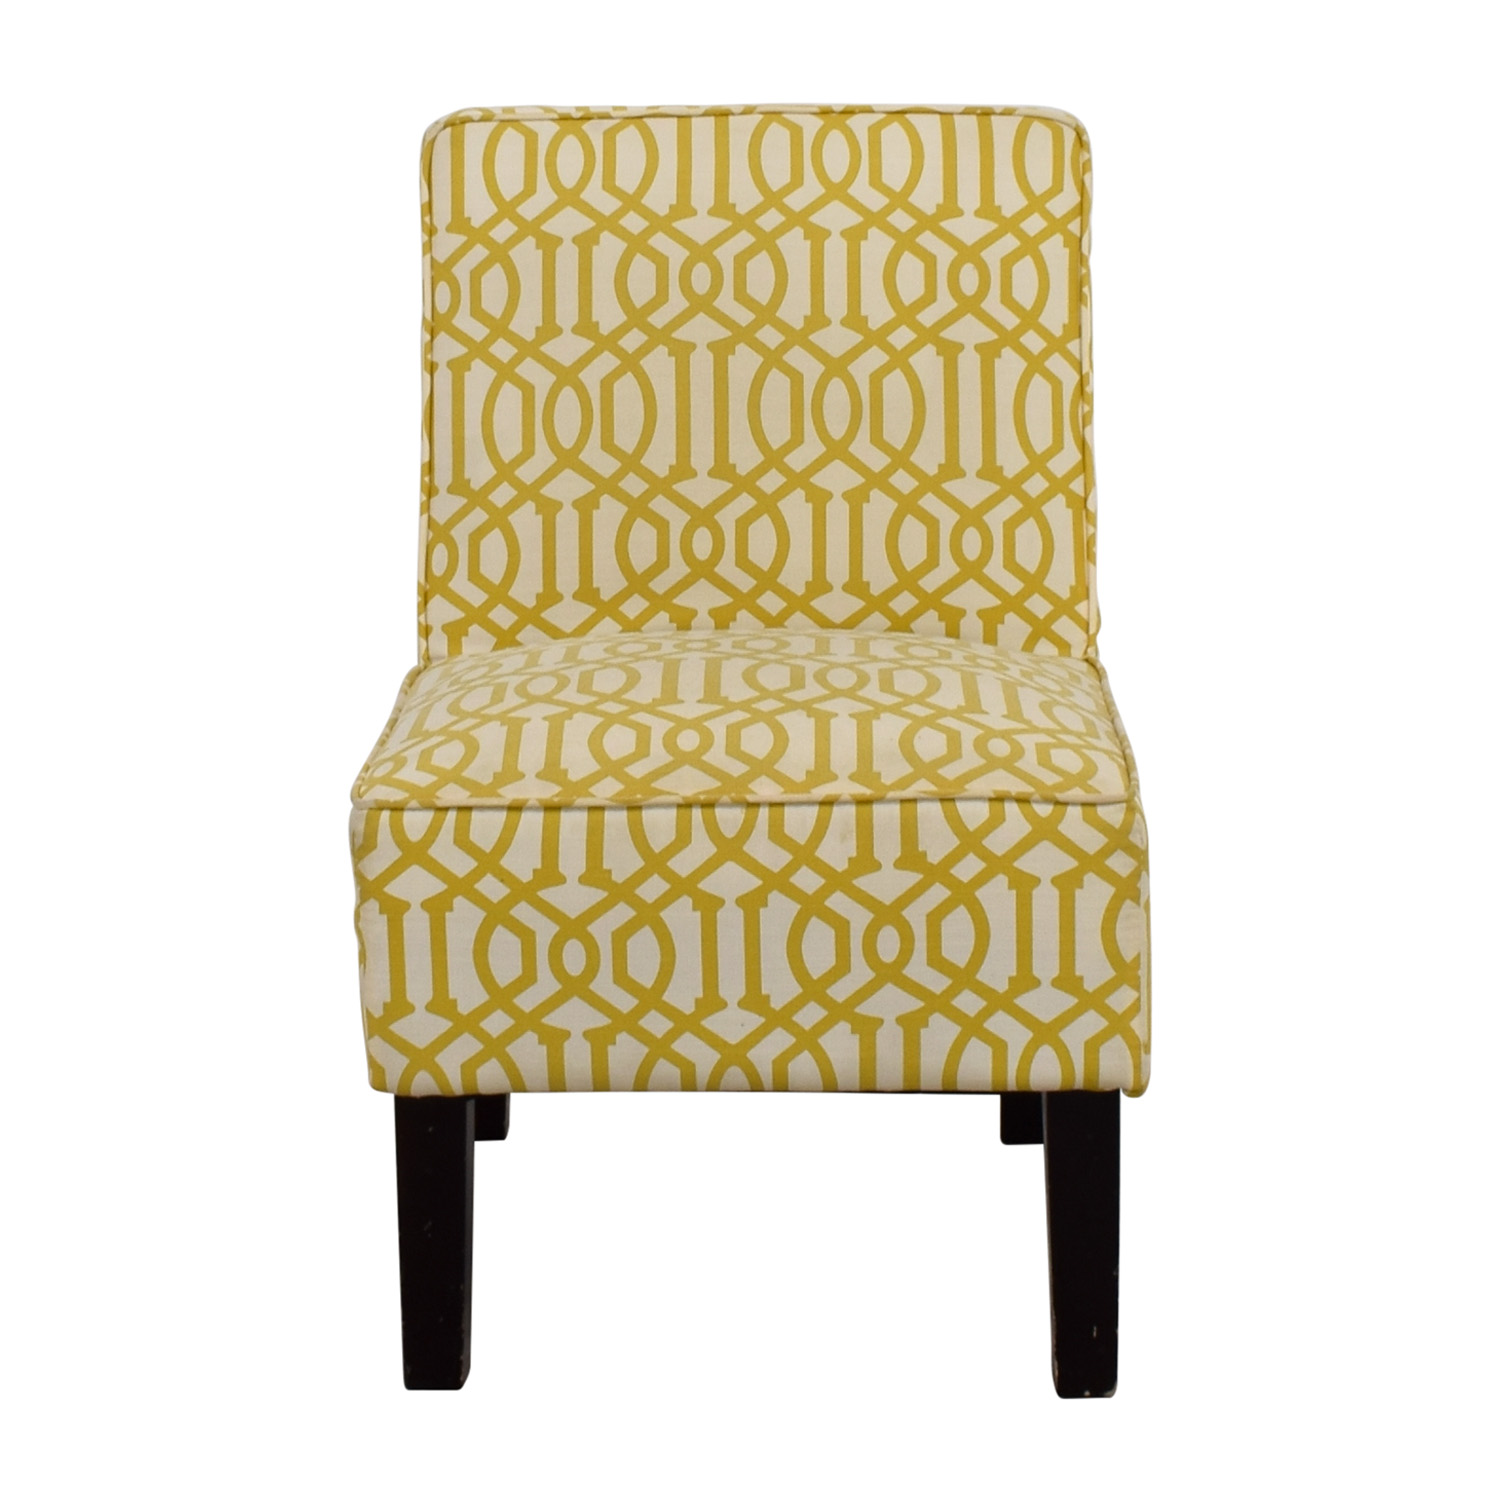 shop Yellow and White Accent Chair online